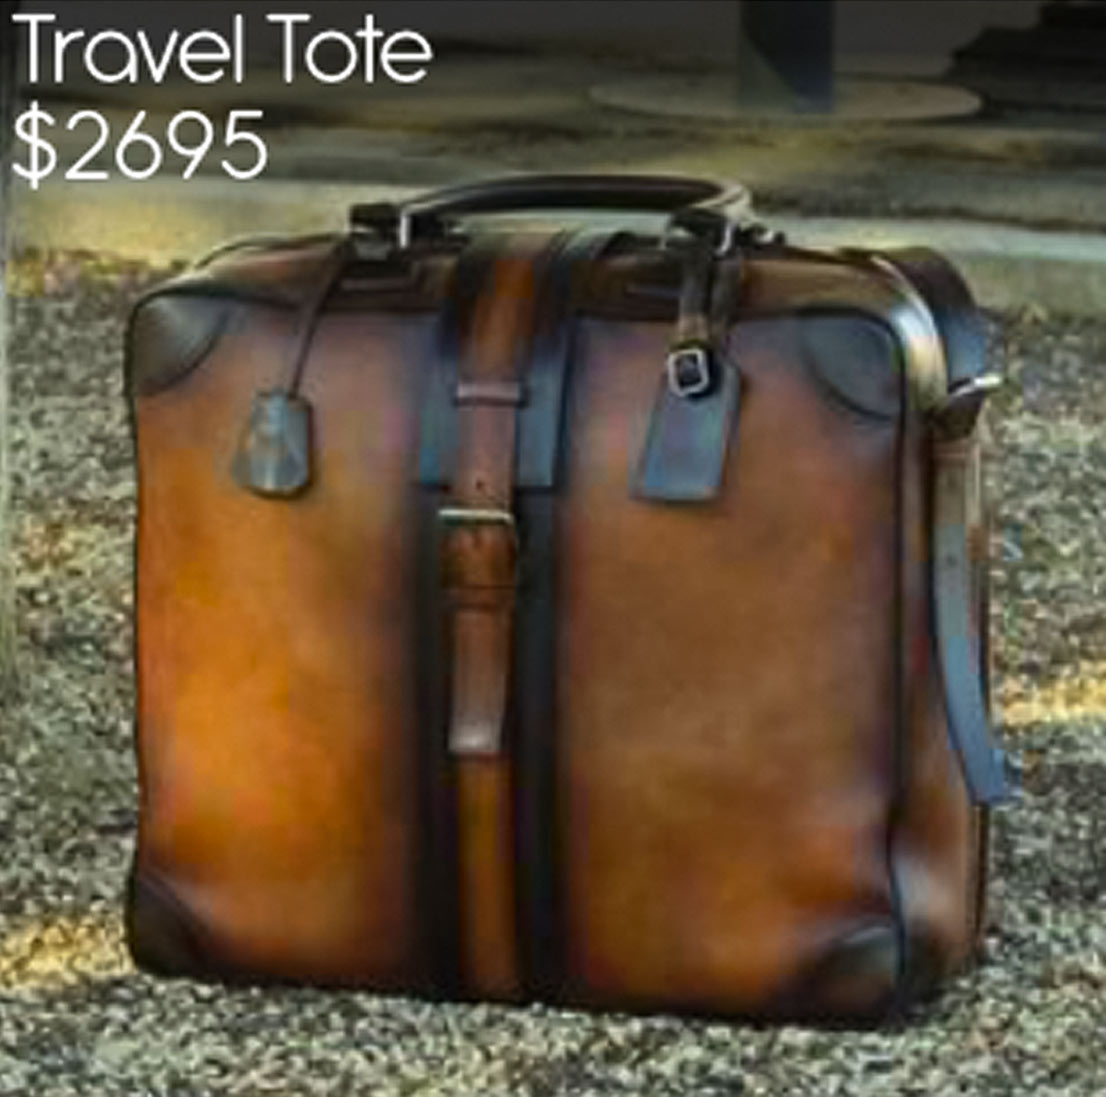 - Travel Tote